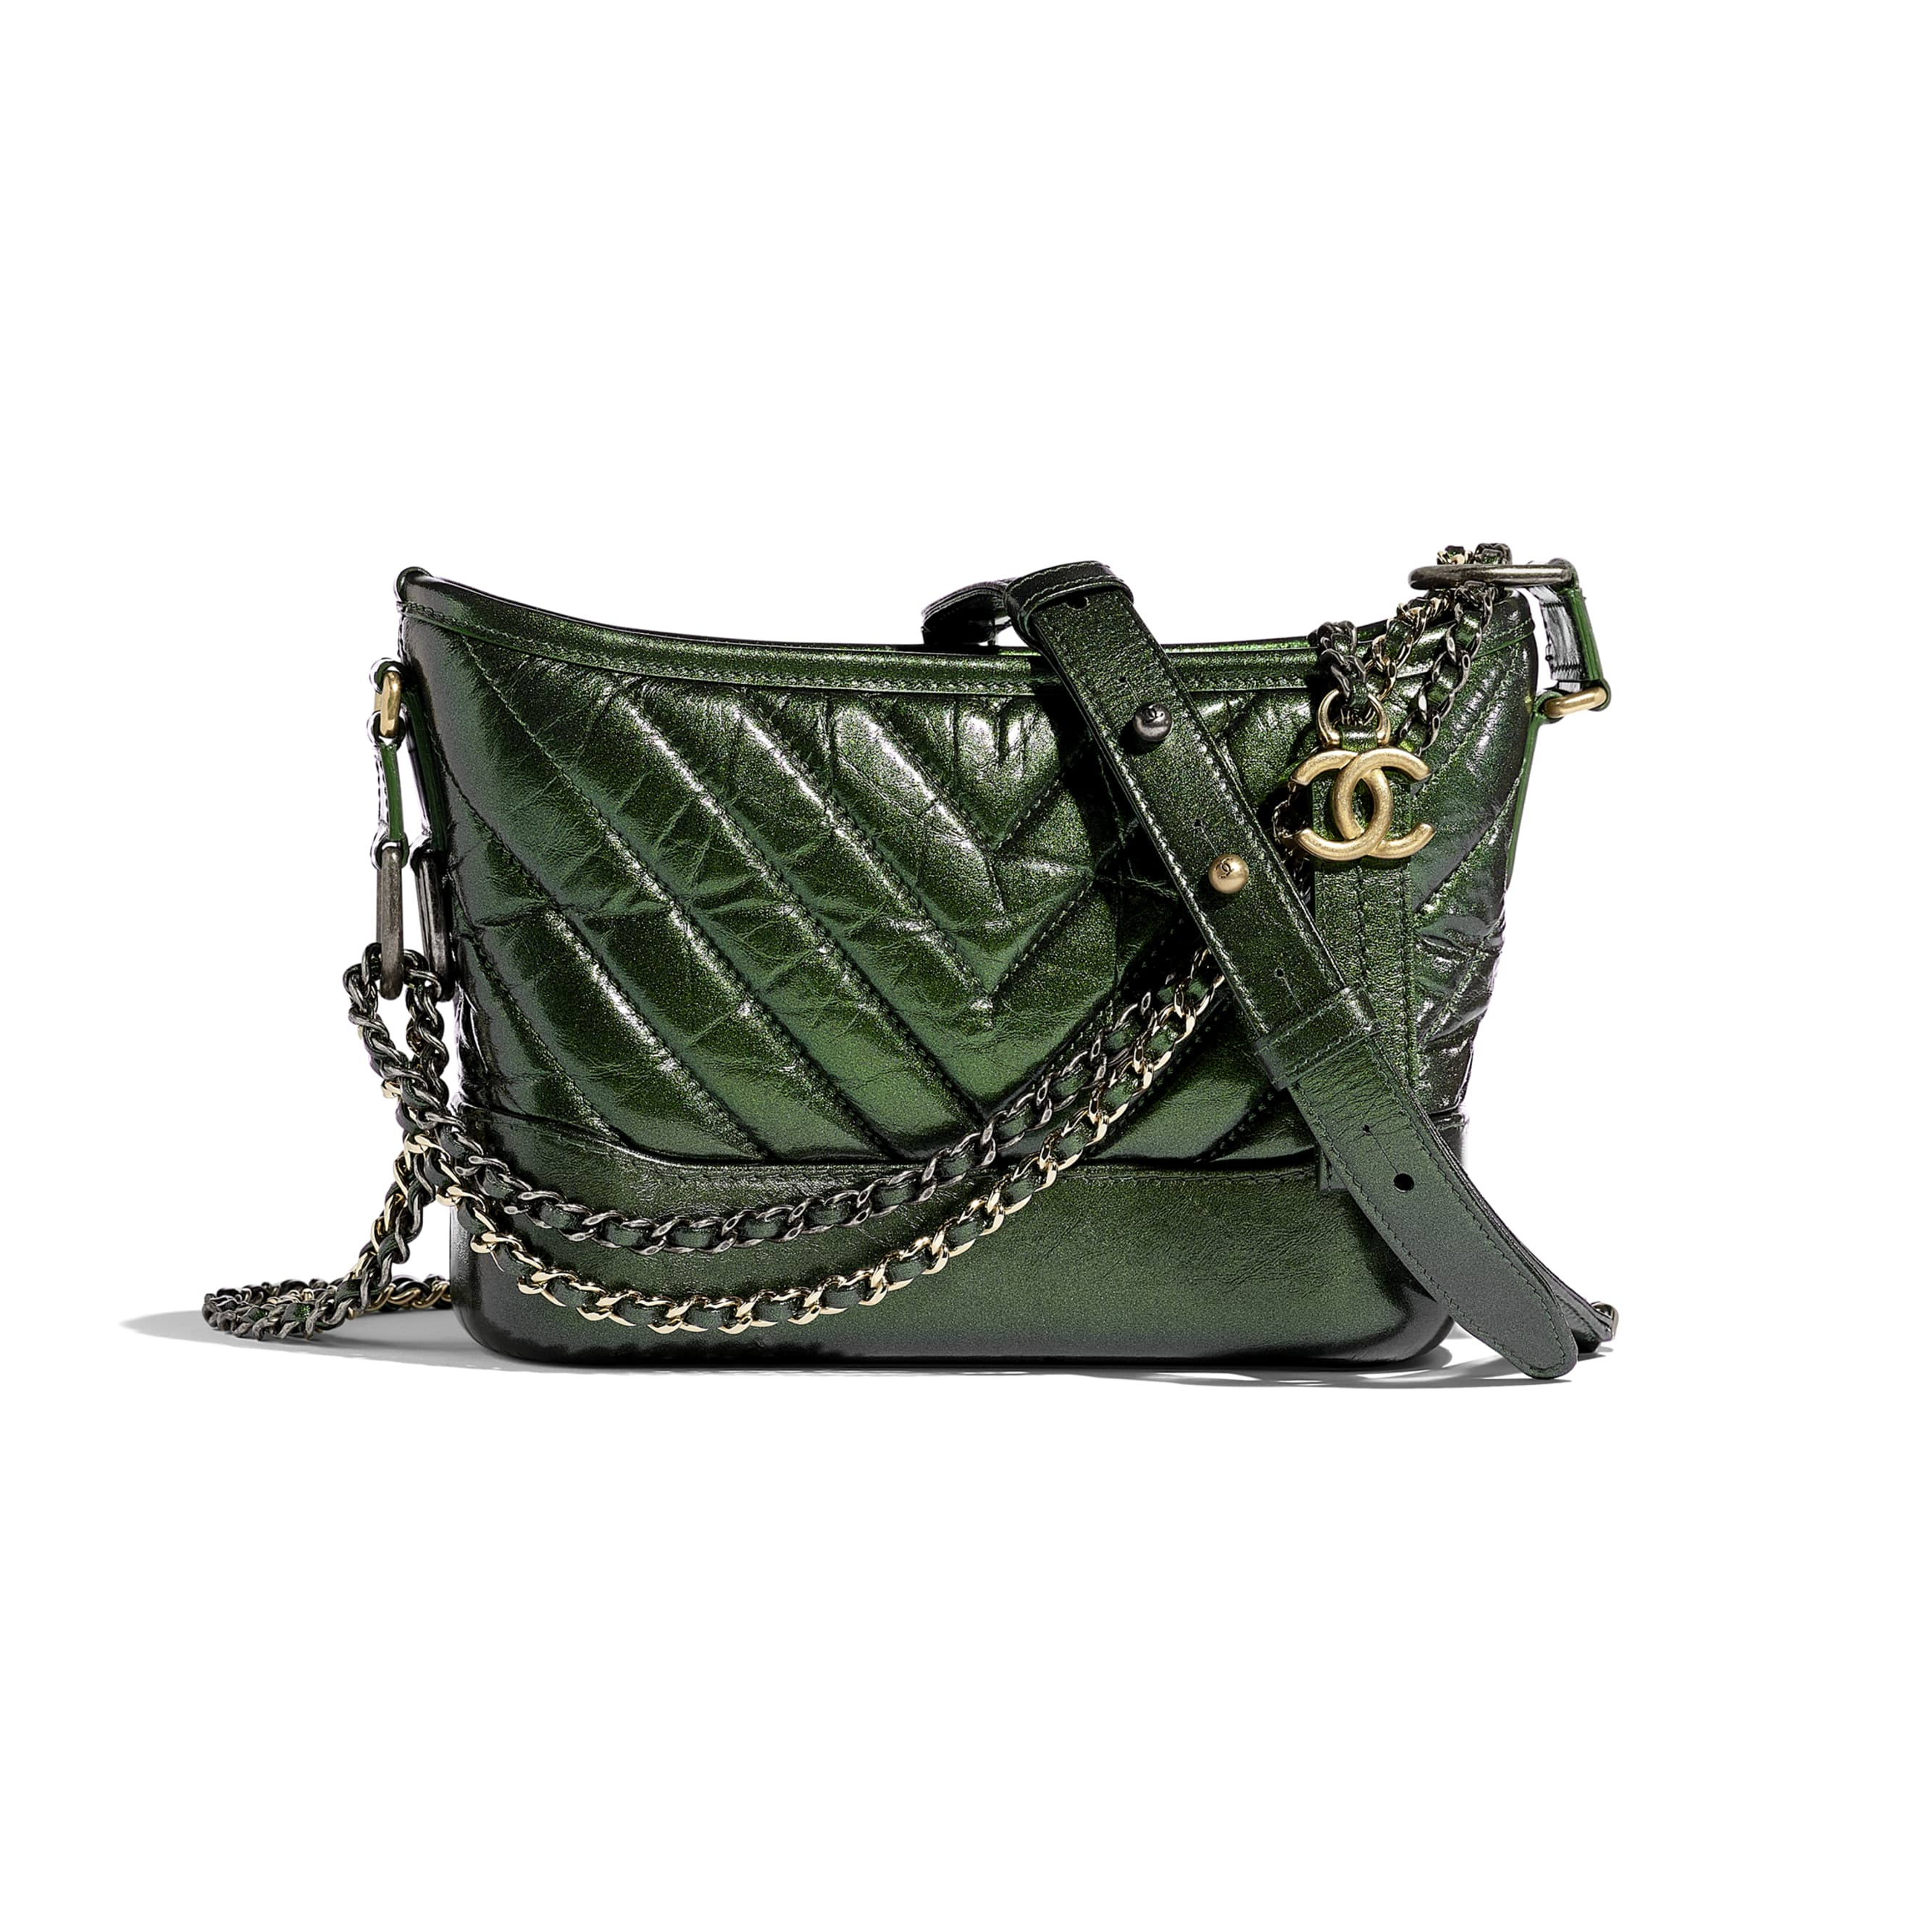 CHANEL'S GABRIELLE Small Hobo Bag - Green - Aged Calfskin, Silver-Tone & Gold-Tone Metal - CHANEL - Default view - see standard sized version